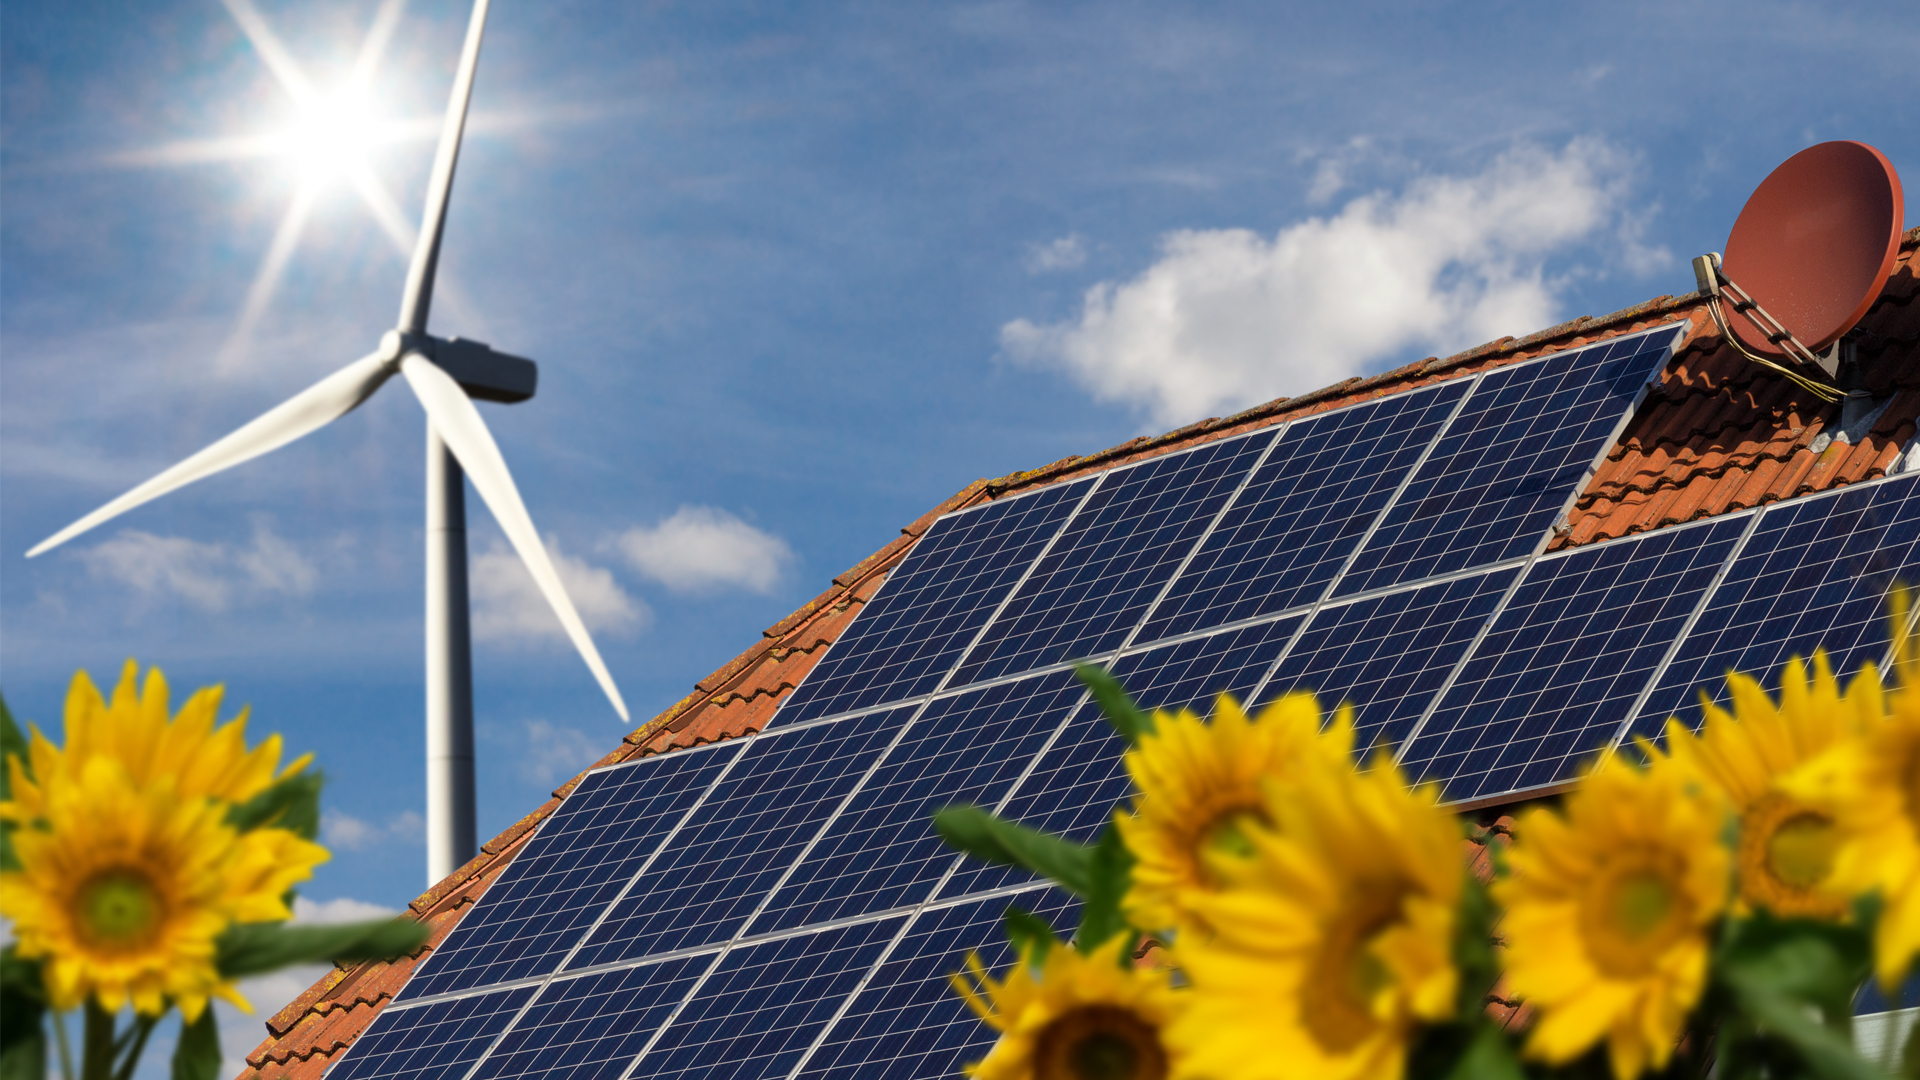 Solar Energy Could Provide Up To 40% Of The Country's Electricty By 2035